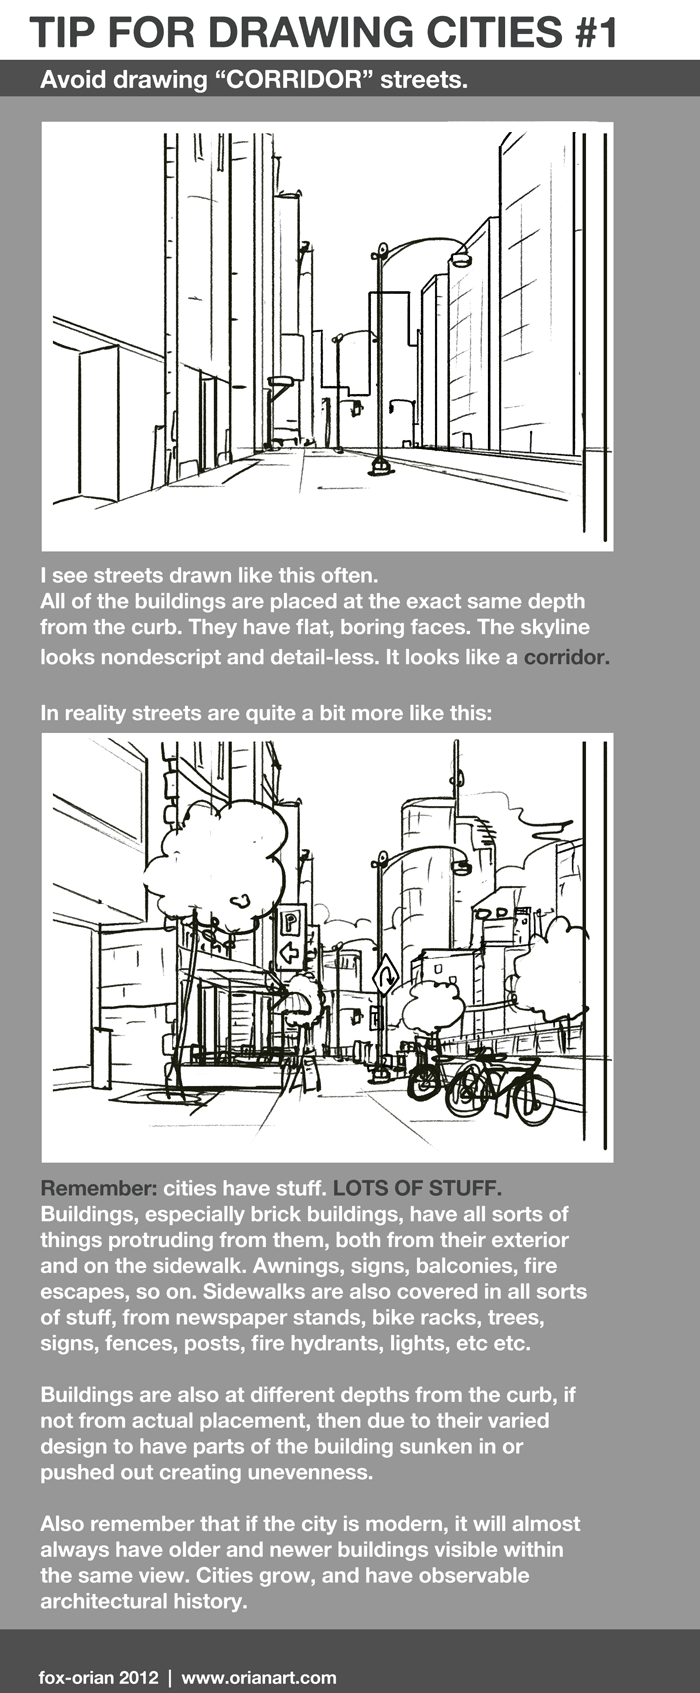 Click the image to go to the fullsize! Easier to read. A big ol' tip on drawing cities from street-level. The drawings are pretty crude, (I did them very fast,) but I think they get the point across :) I'm sure some streets like in the first example actually exist in the world, but why would you choose to draw something so boringly bland? Remember! Observe these things in real life as you walk around! This tip is just to make you aware. By observing in real life, is how you can really make it feel real! Hope it helps you out!